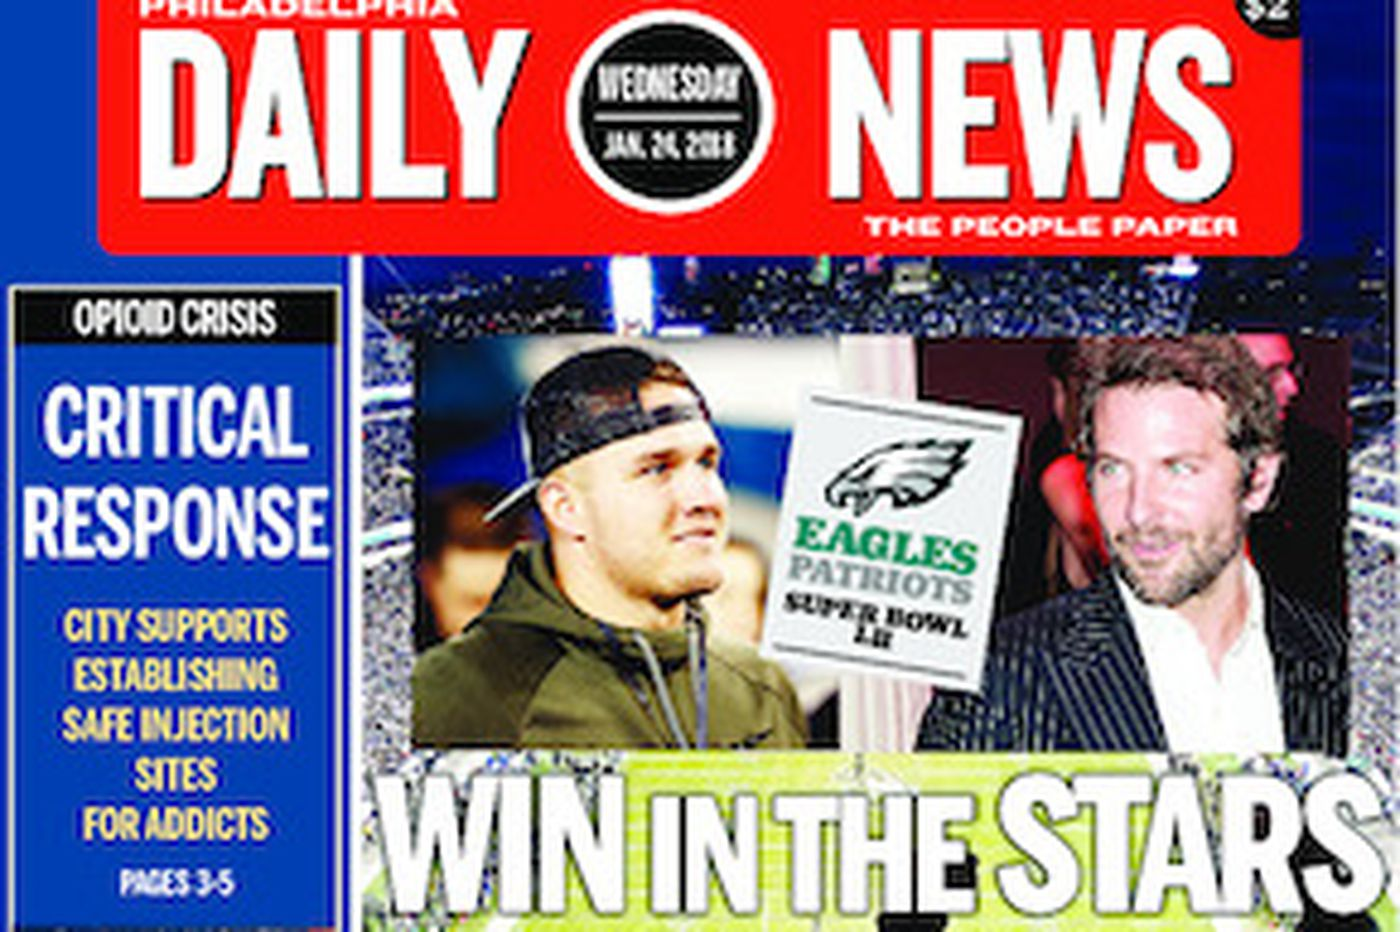 Dailynews Monthly Covers 01/24/18